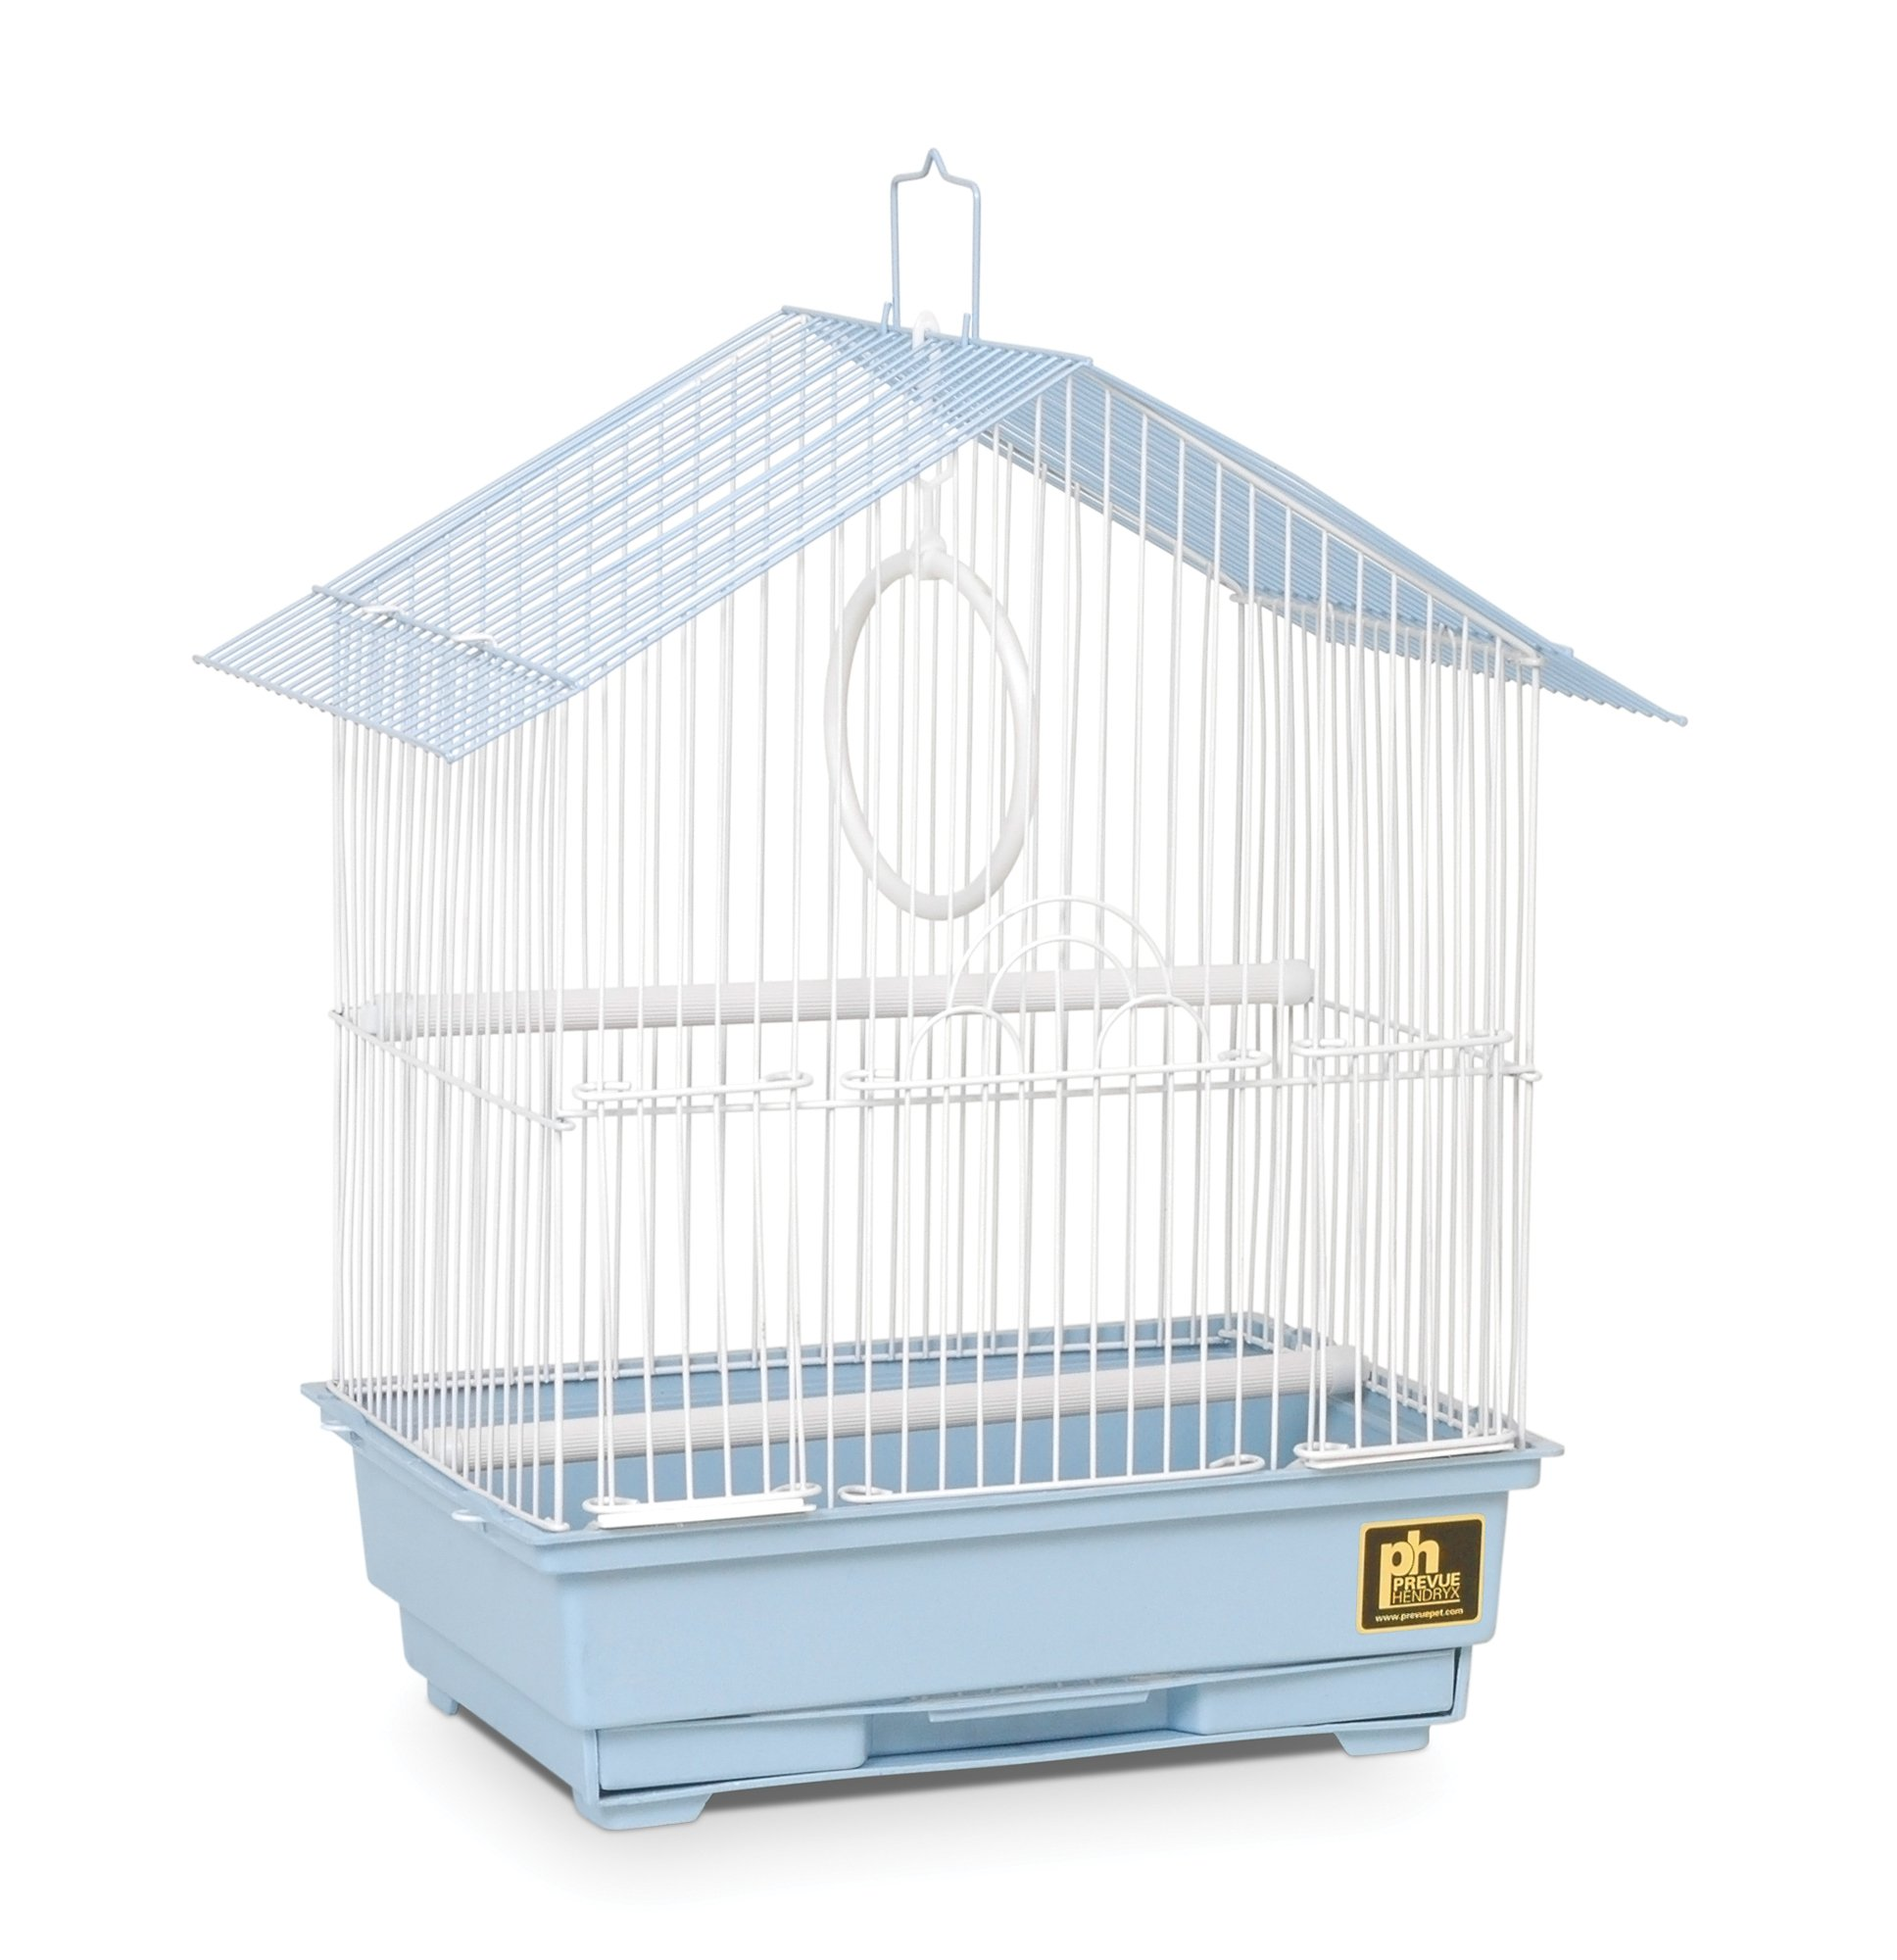 Prevue Pet Products 31996 House Style Economy Bird Cage, Blue by Prevue Pet Products